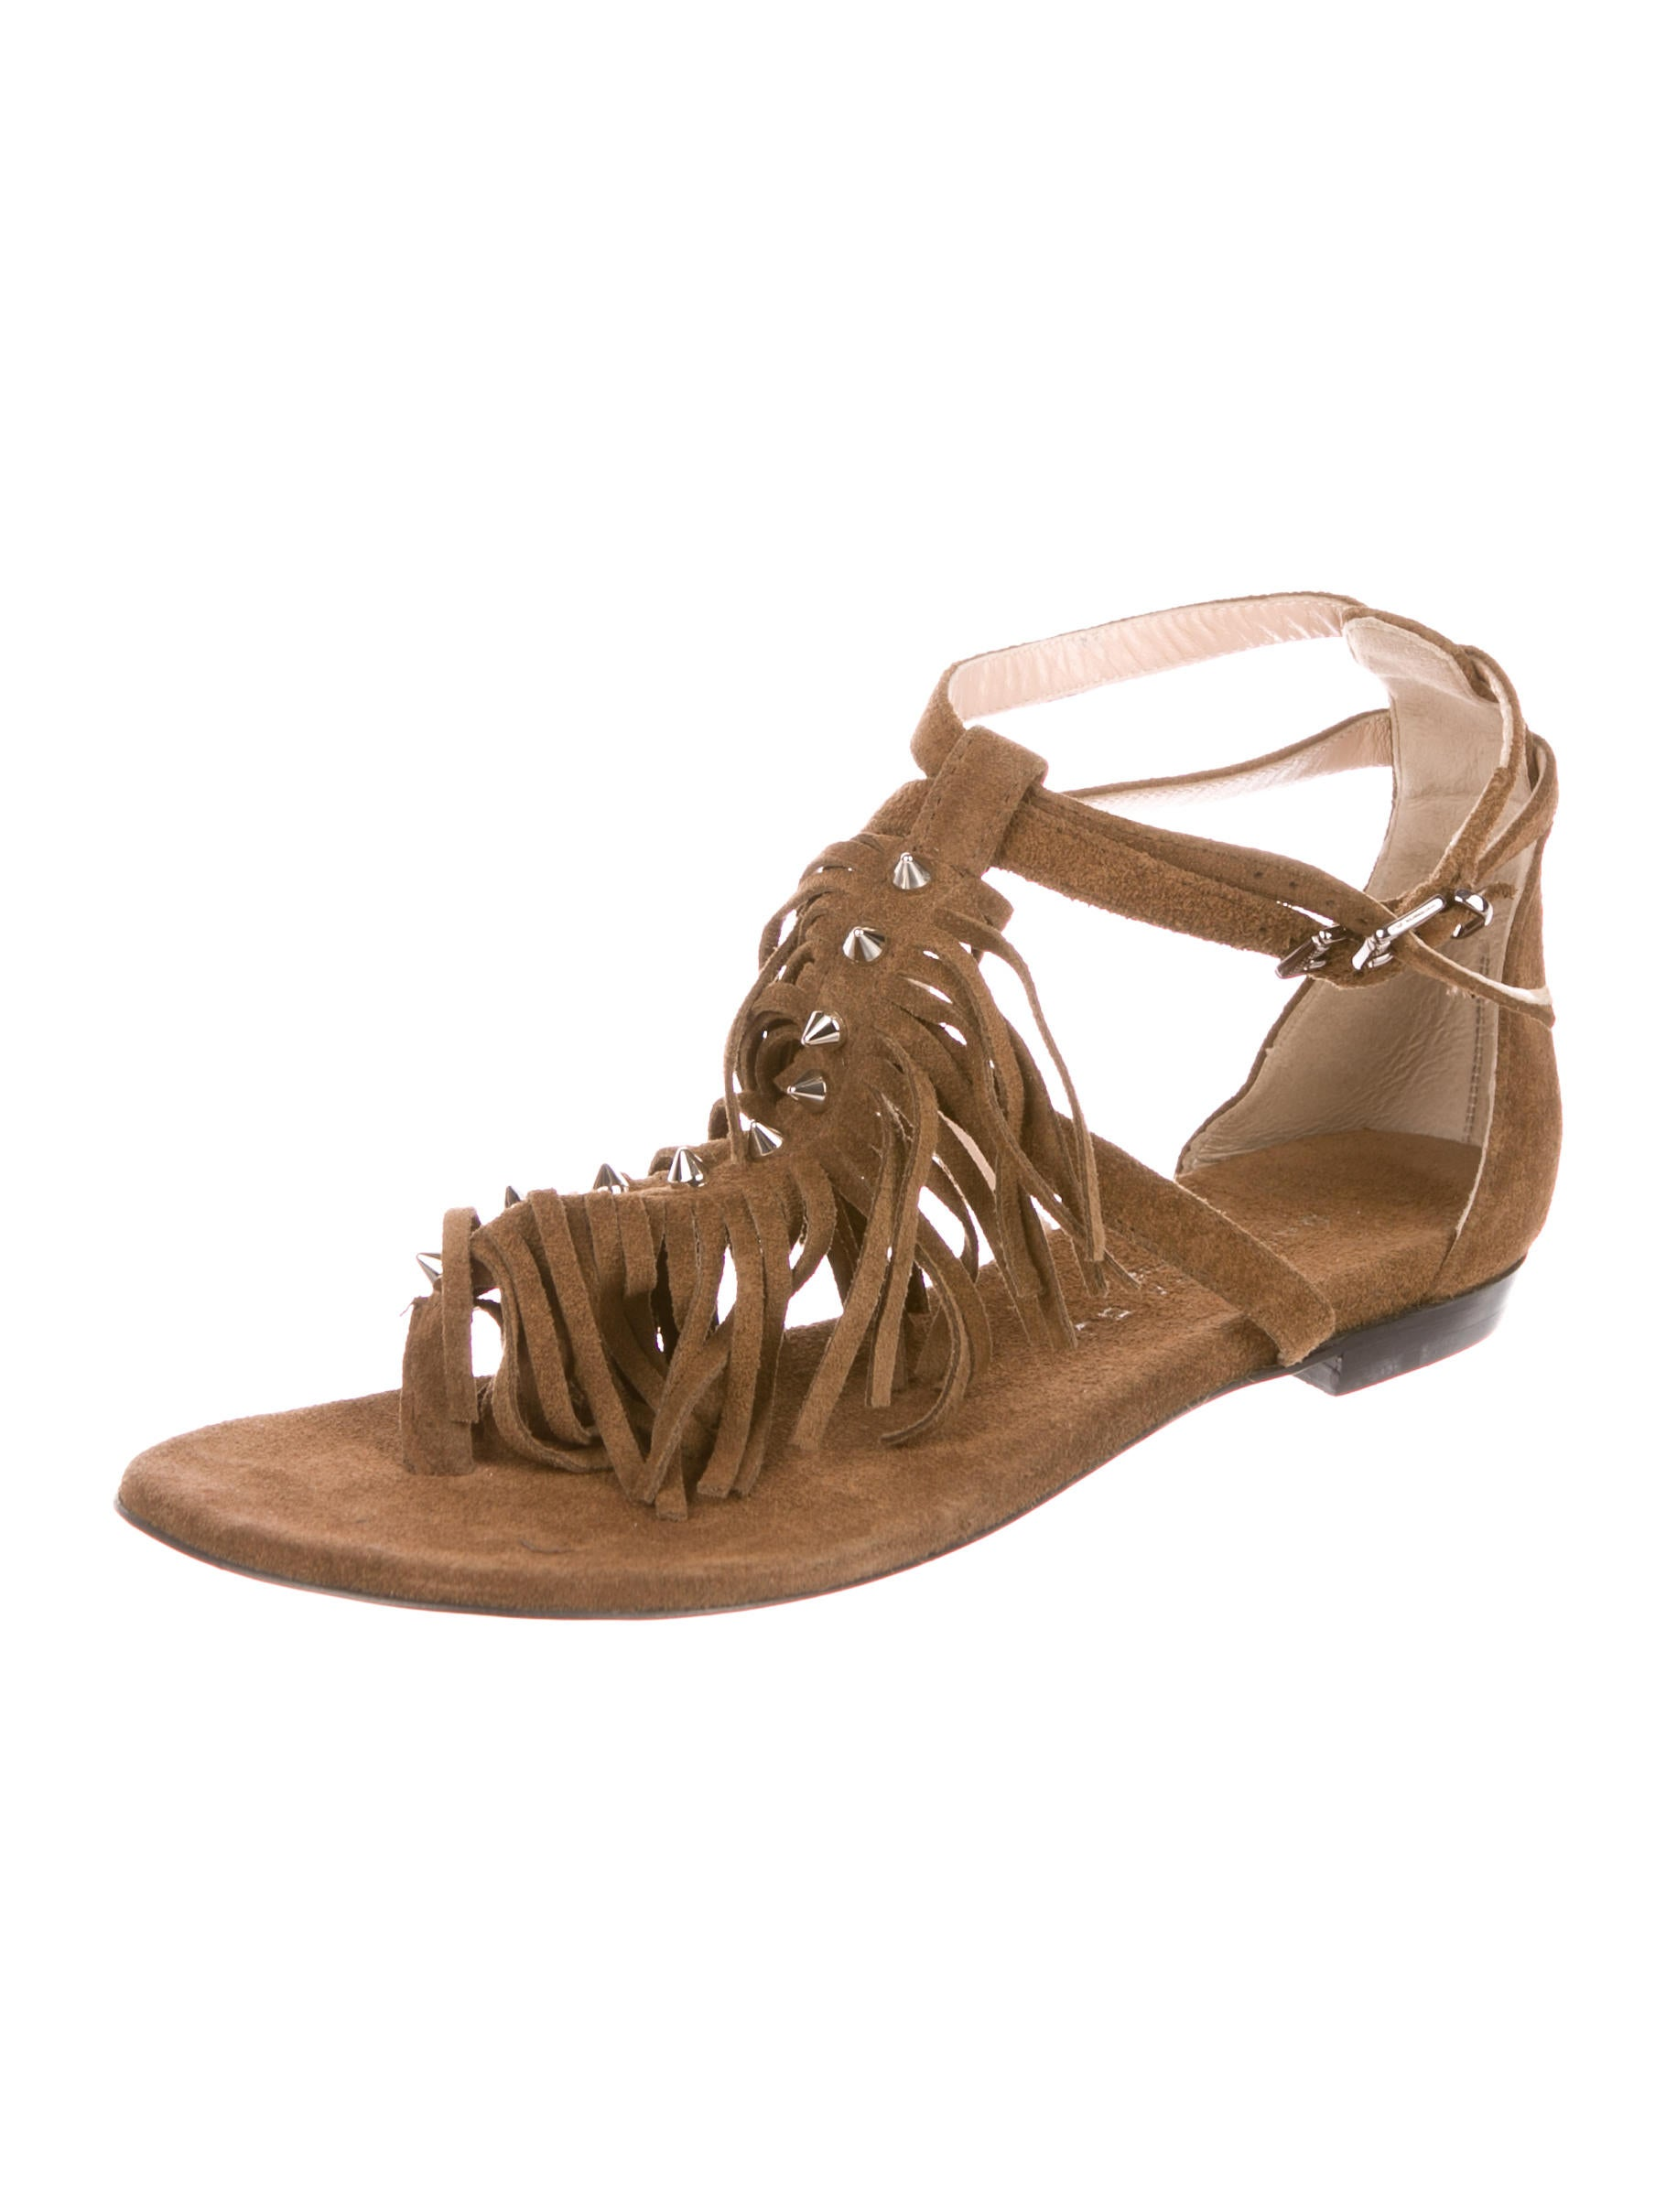 clearance clearance store Barbara Bui Fridge Suede Sandals outlet sale online NkyOMF4